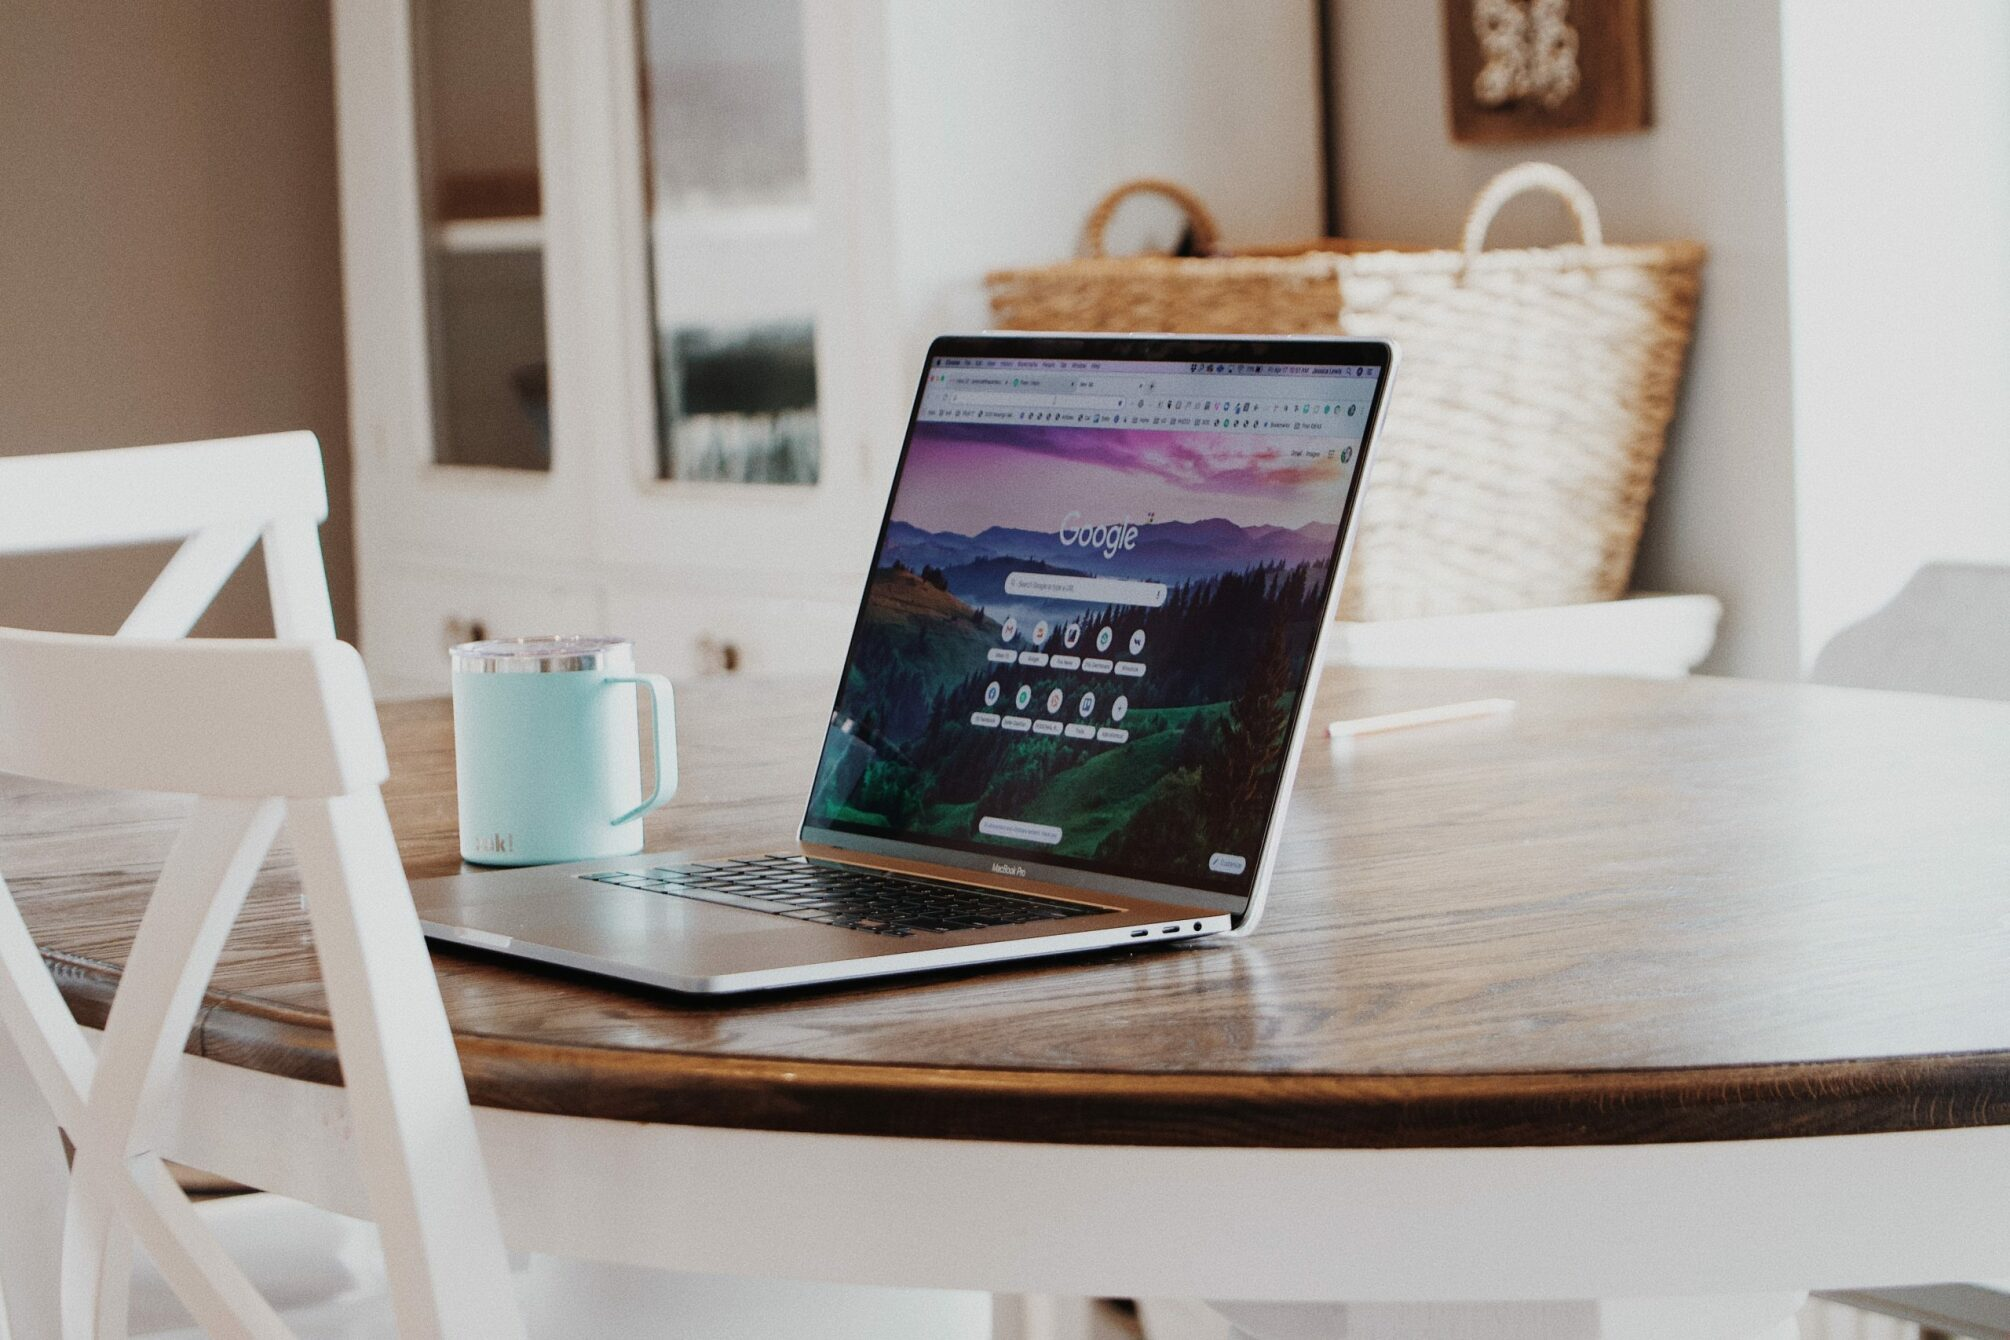 Laptop on a dining table with the google search screen open